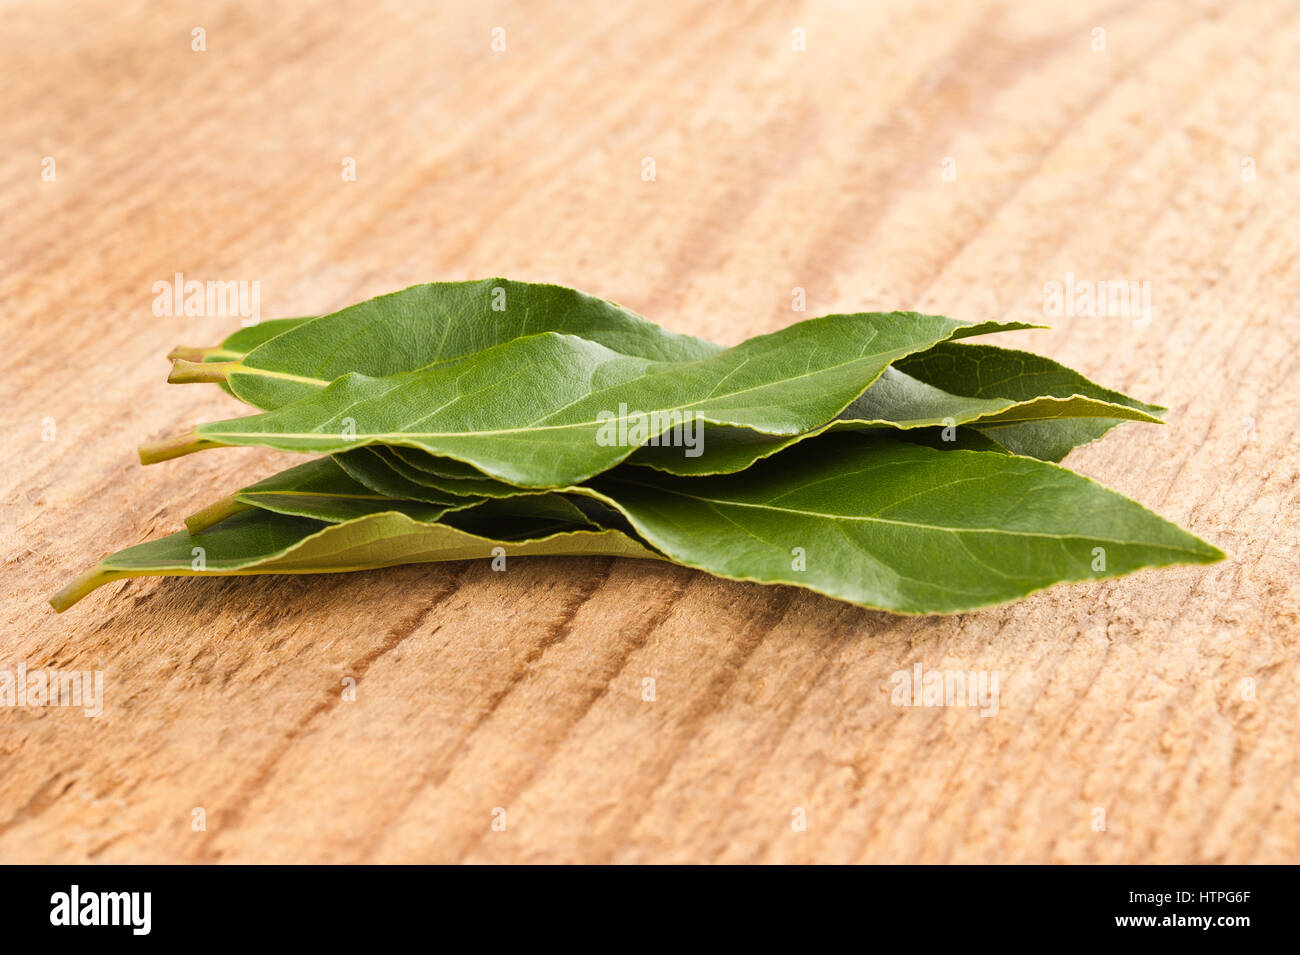 Laurel leaves on wood background - Stock Image